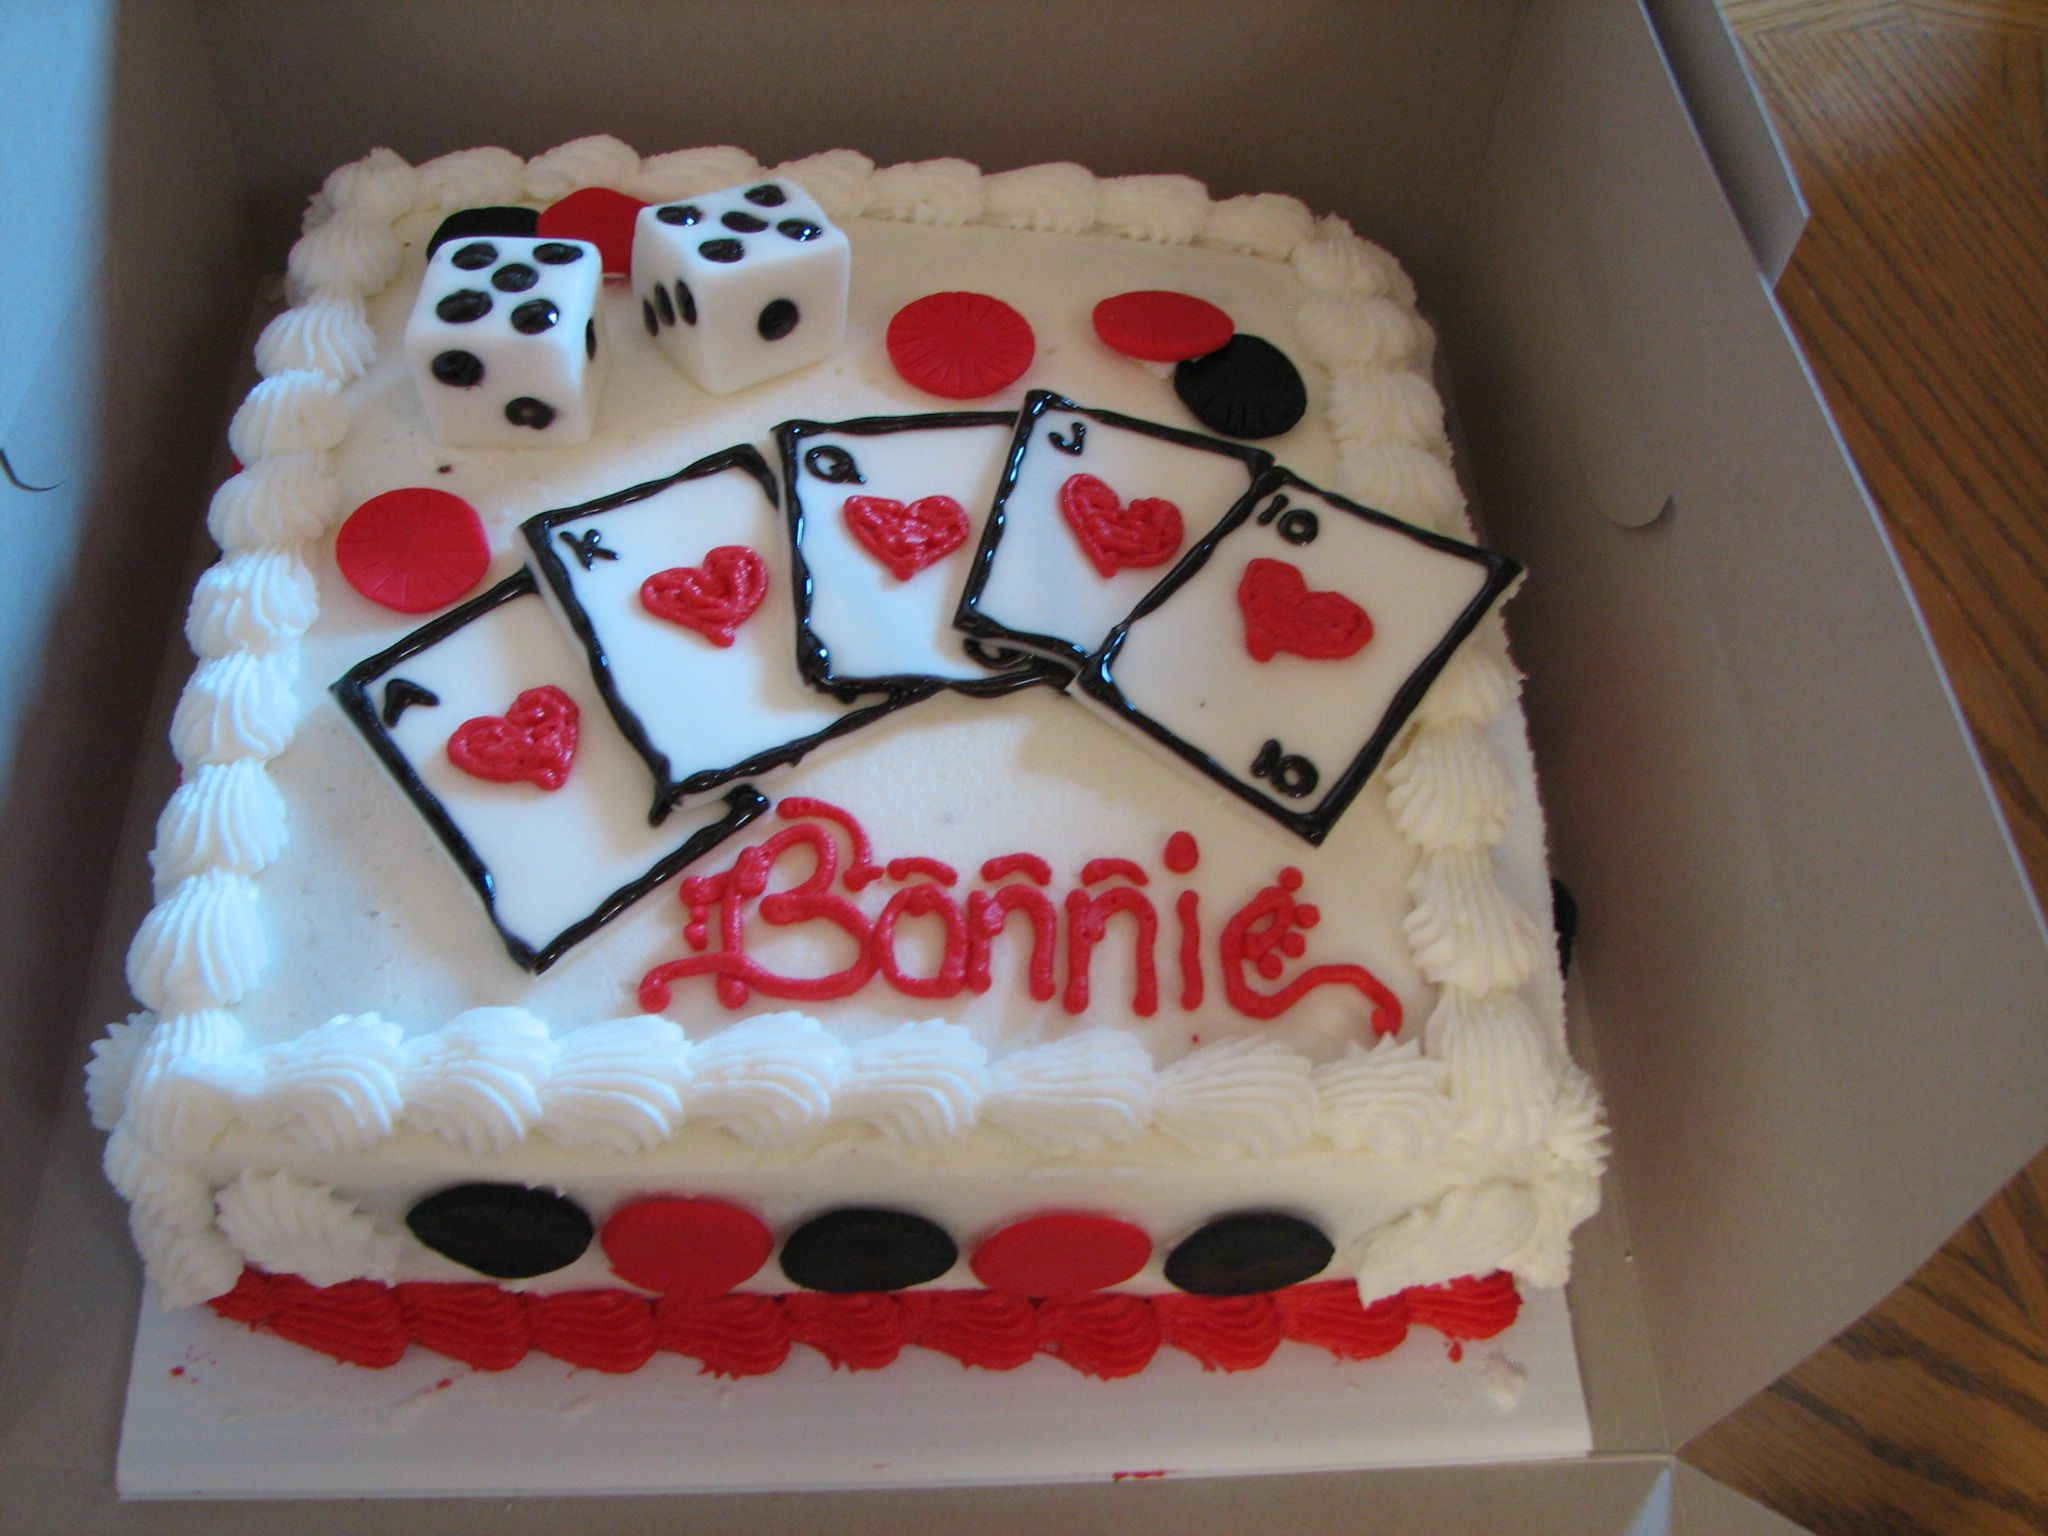 Pictures of casino cakes gambling affiliation cpc